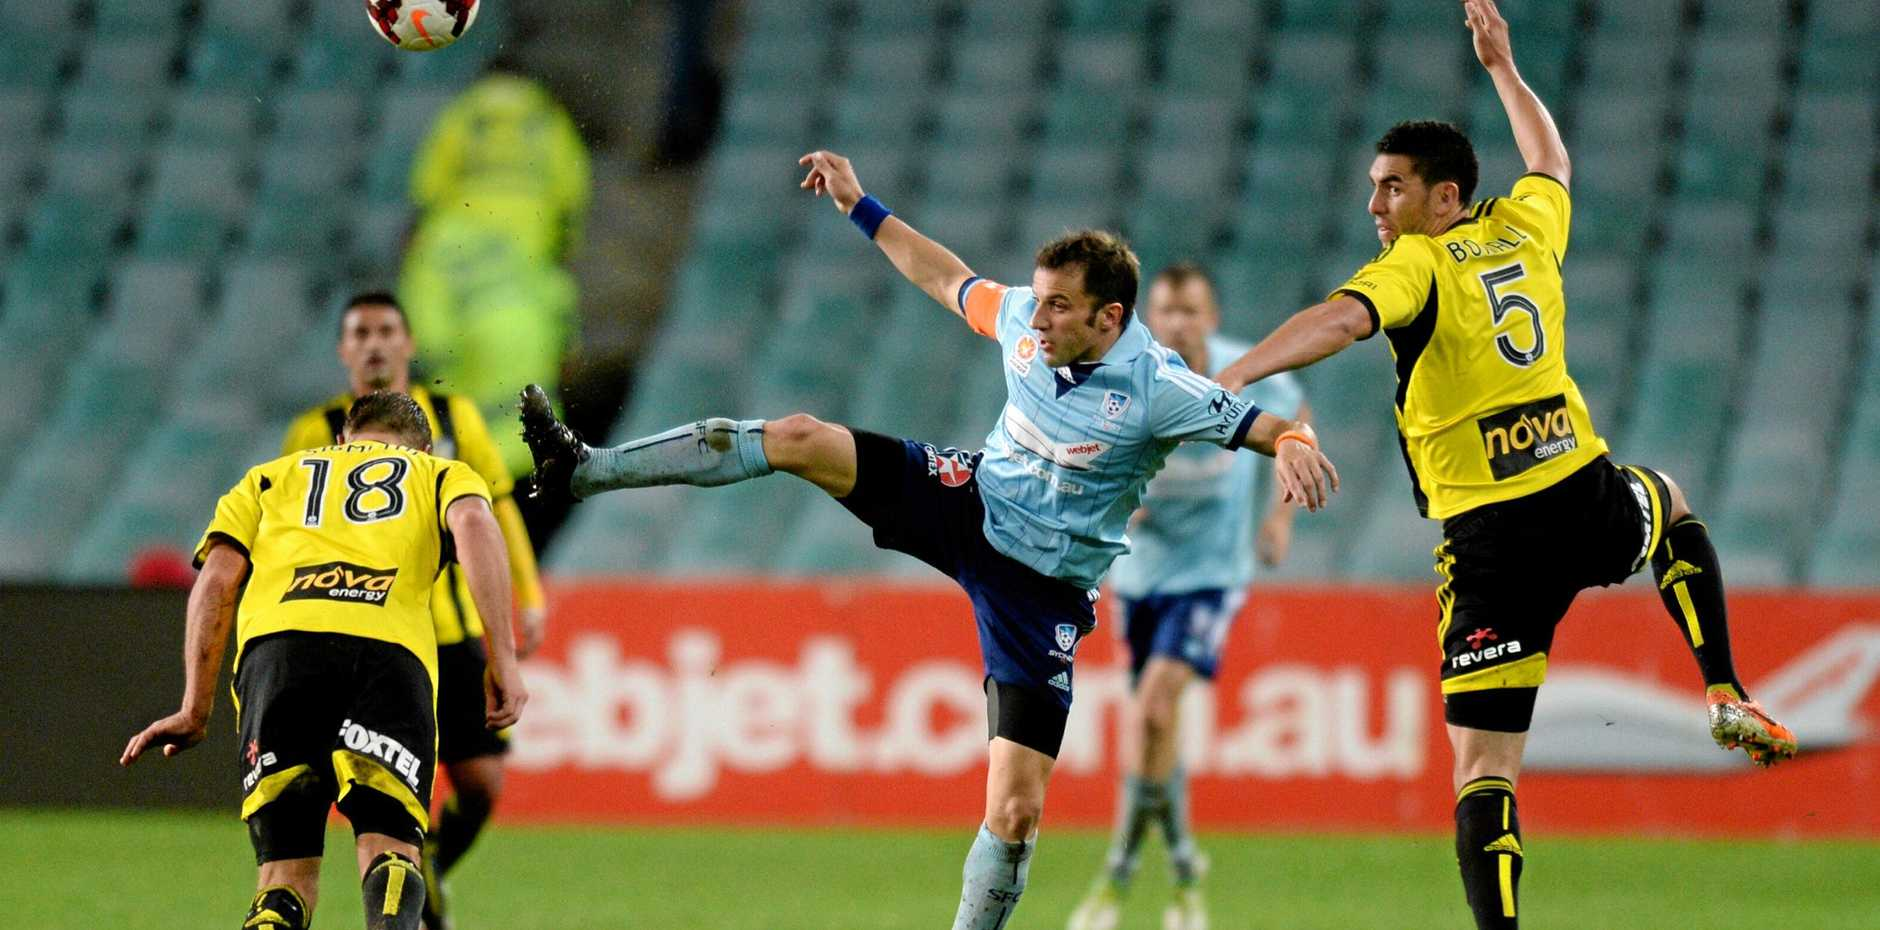 Alessandro del Piero (centre) fights for the ball with Wellington Phoenix's Michael Boxall (right) in Sydney on April 6, 2014. Picture: Lukas Coch/AAP